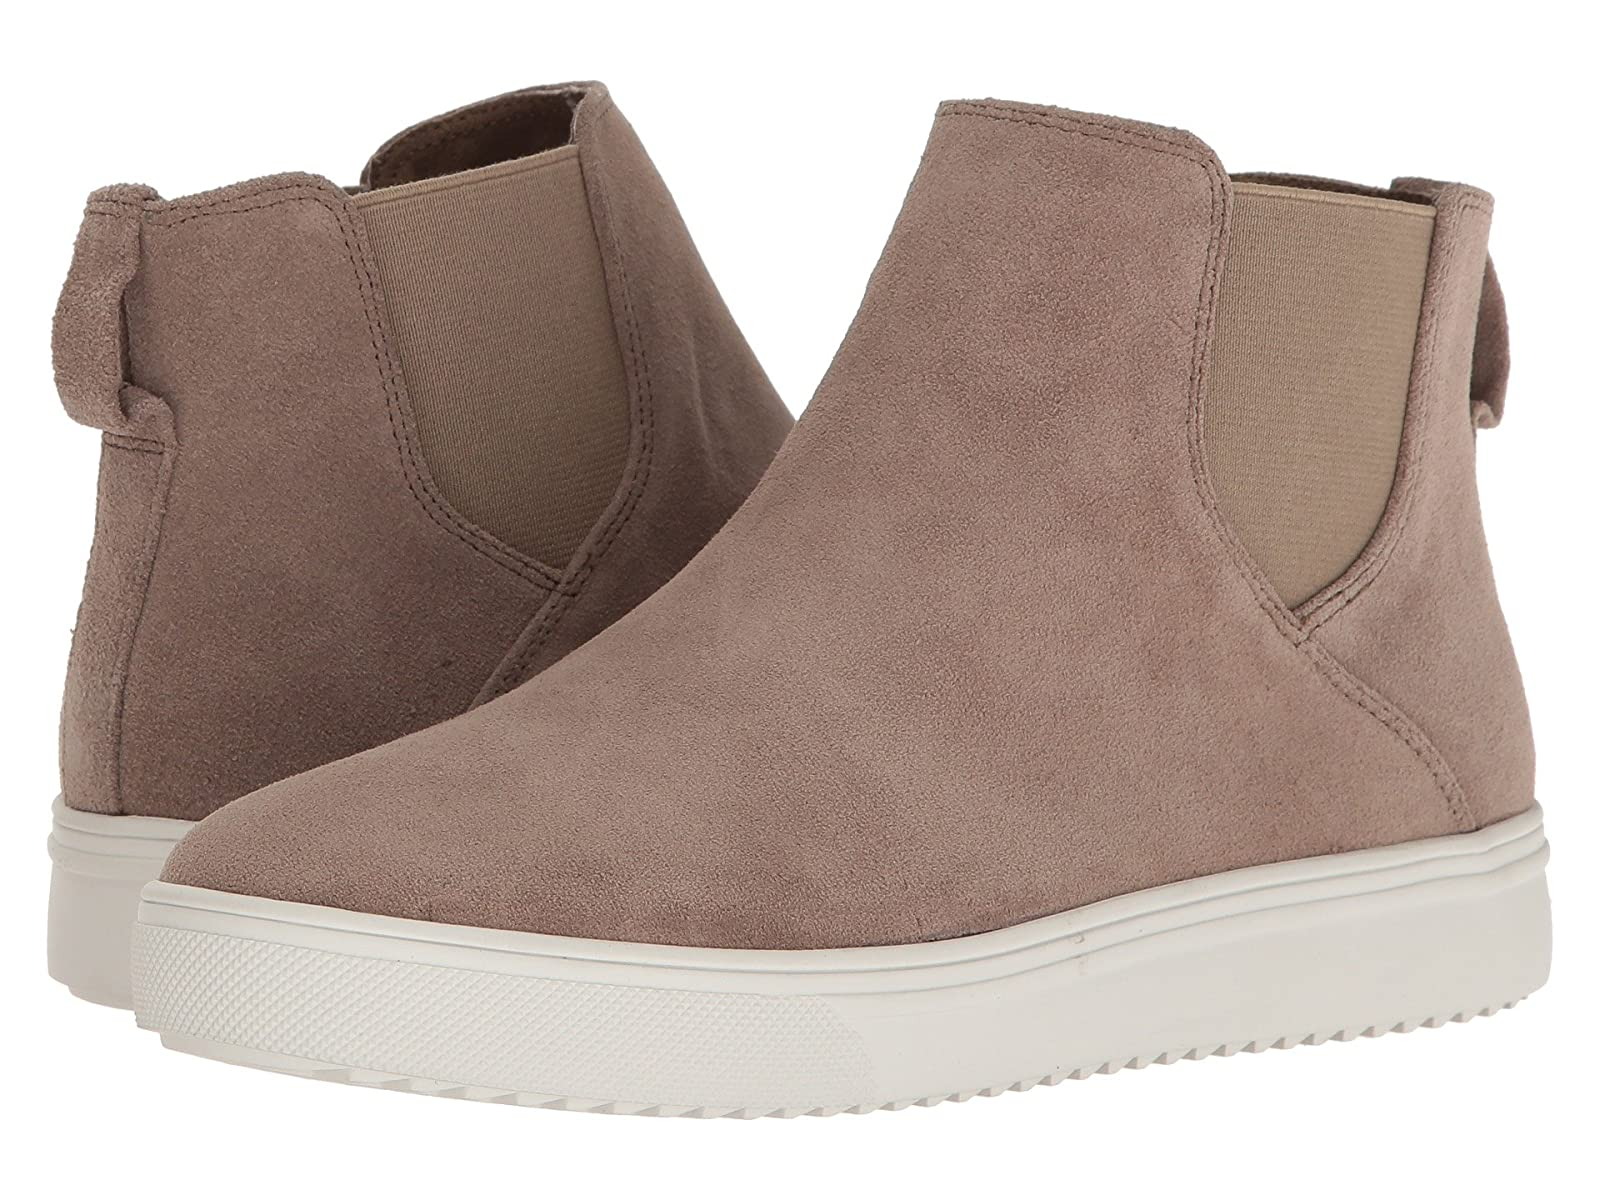 Blondo Baxton WaterproofCheap and distinctive eye-catching shoes